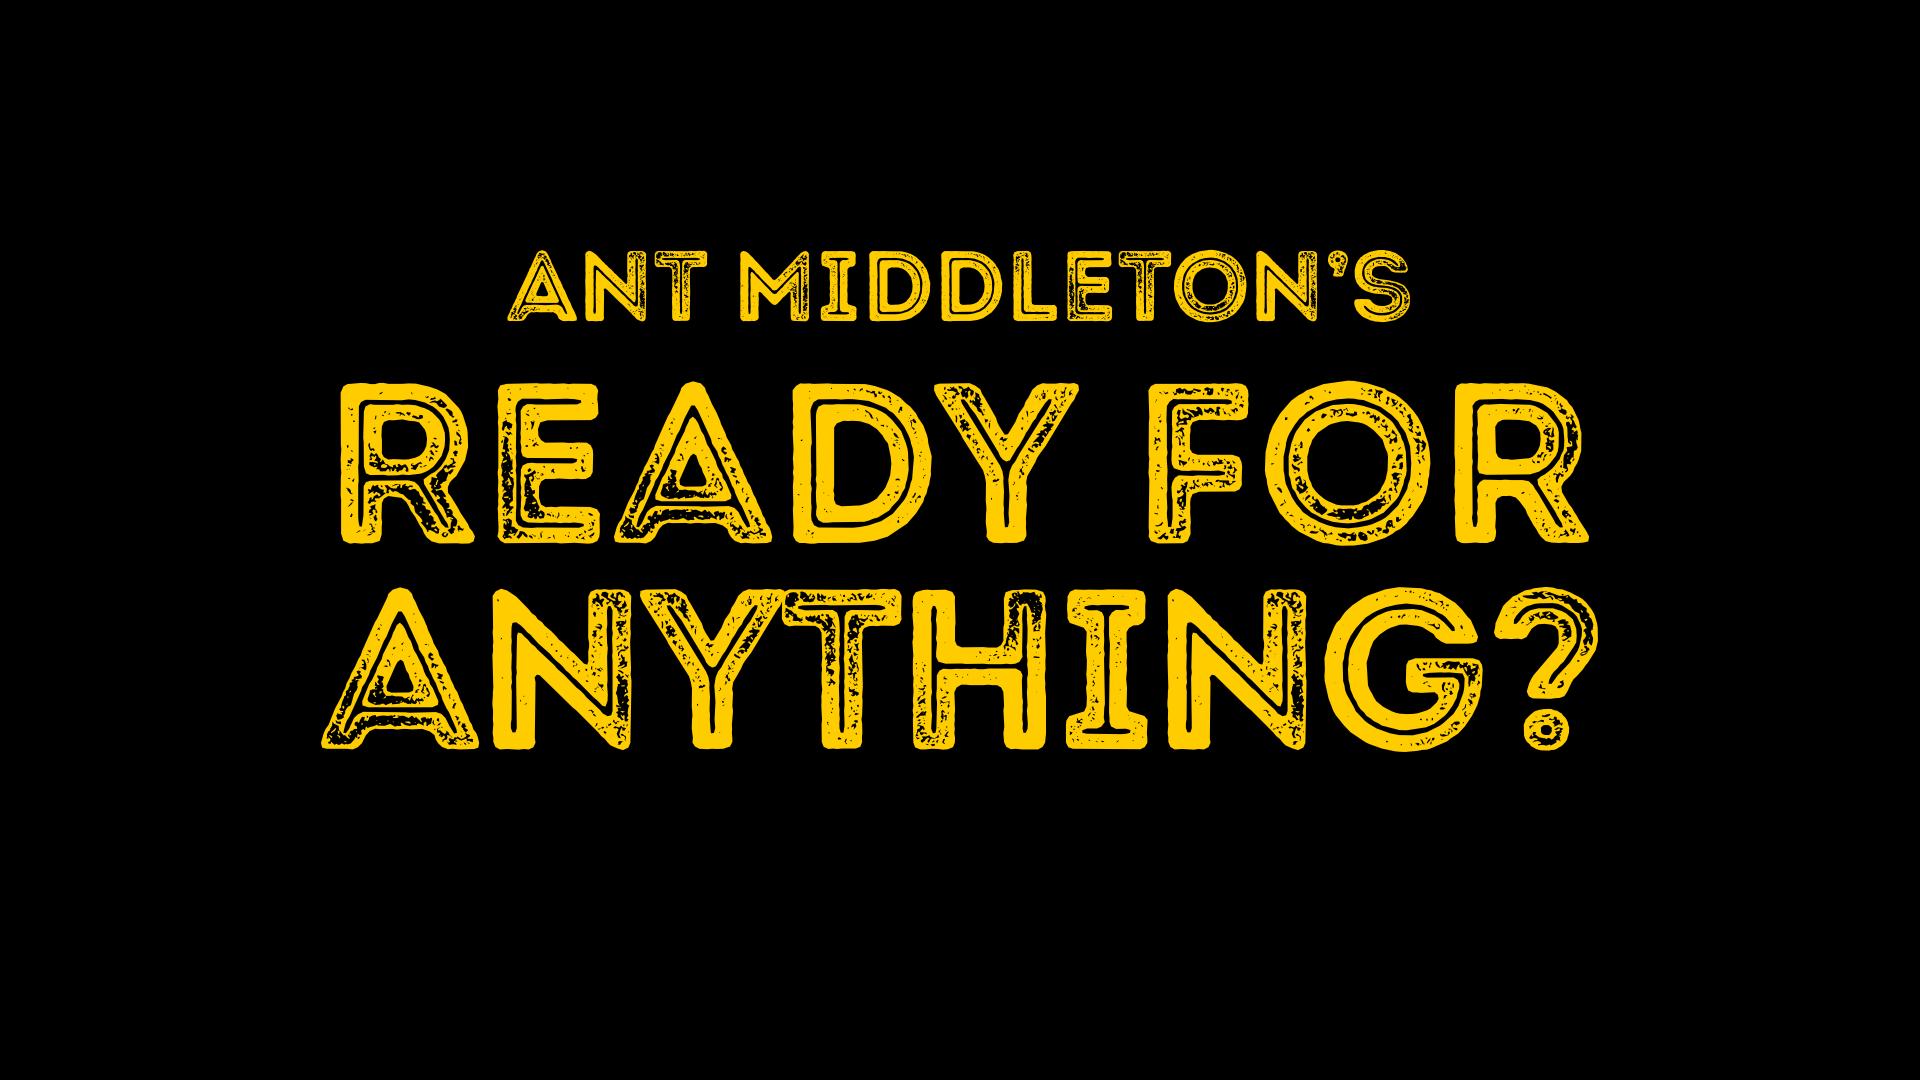 Ant Middletons's Ready for Anything Poster